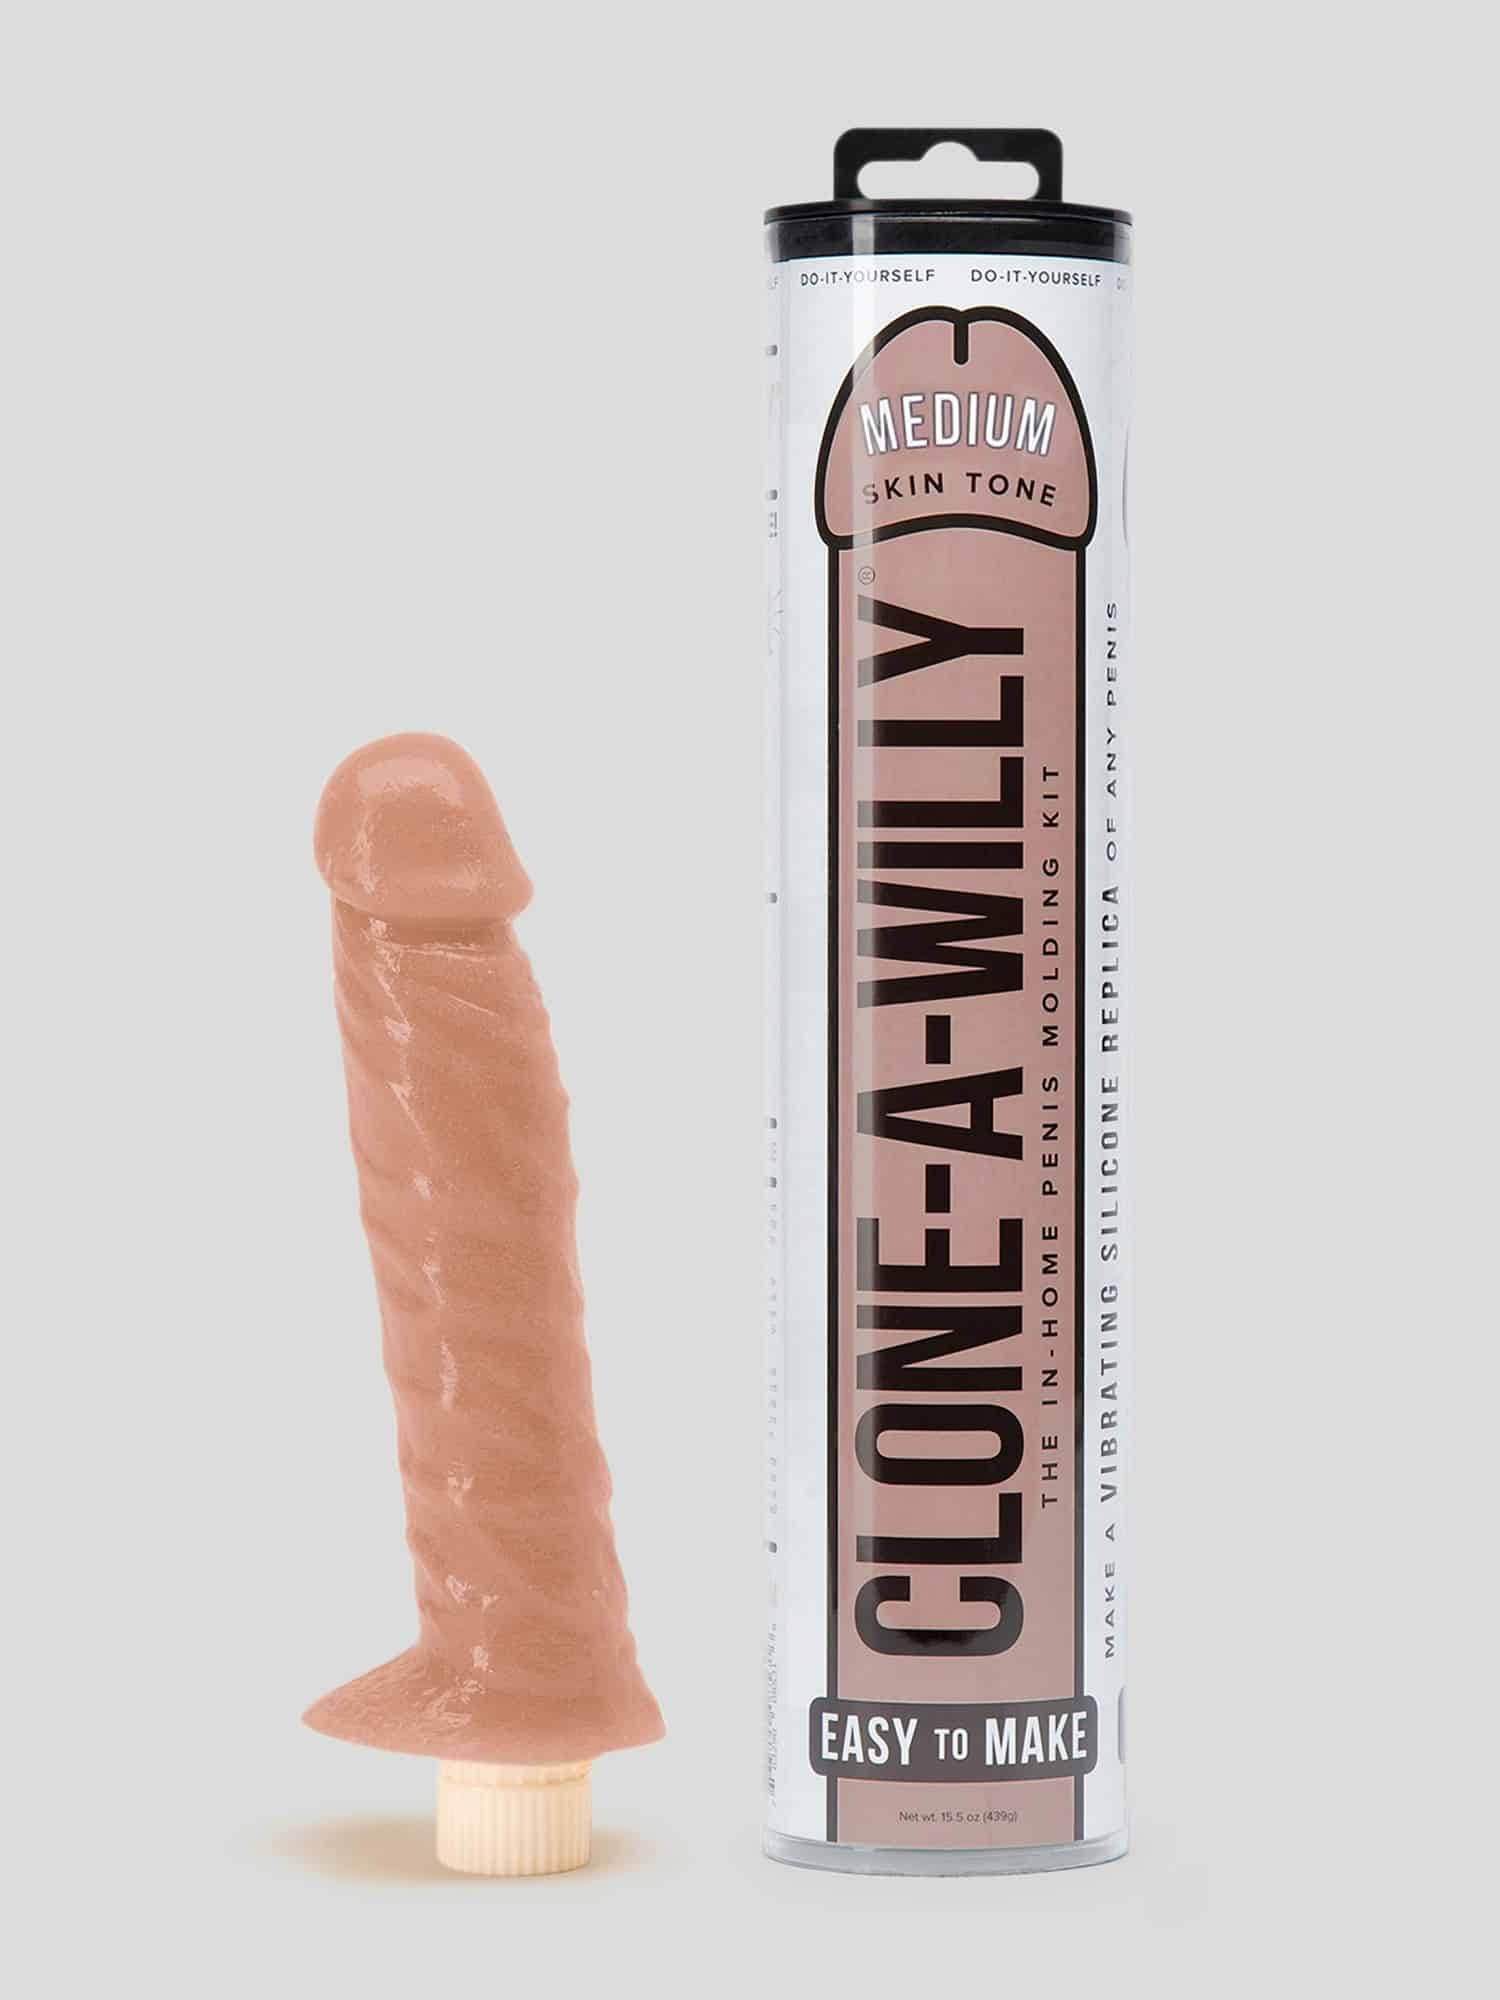 Clone-a-willy Cloning Dildo Kit